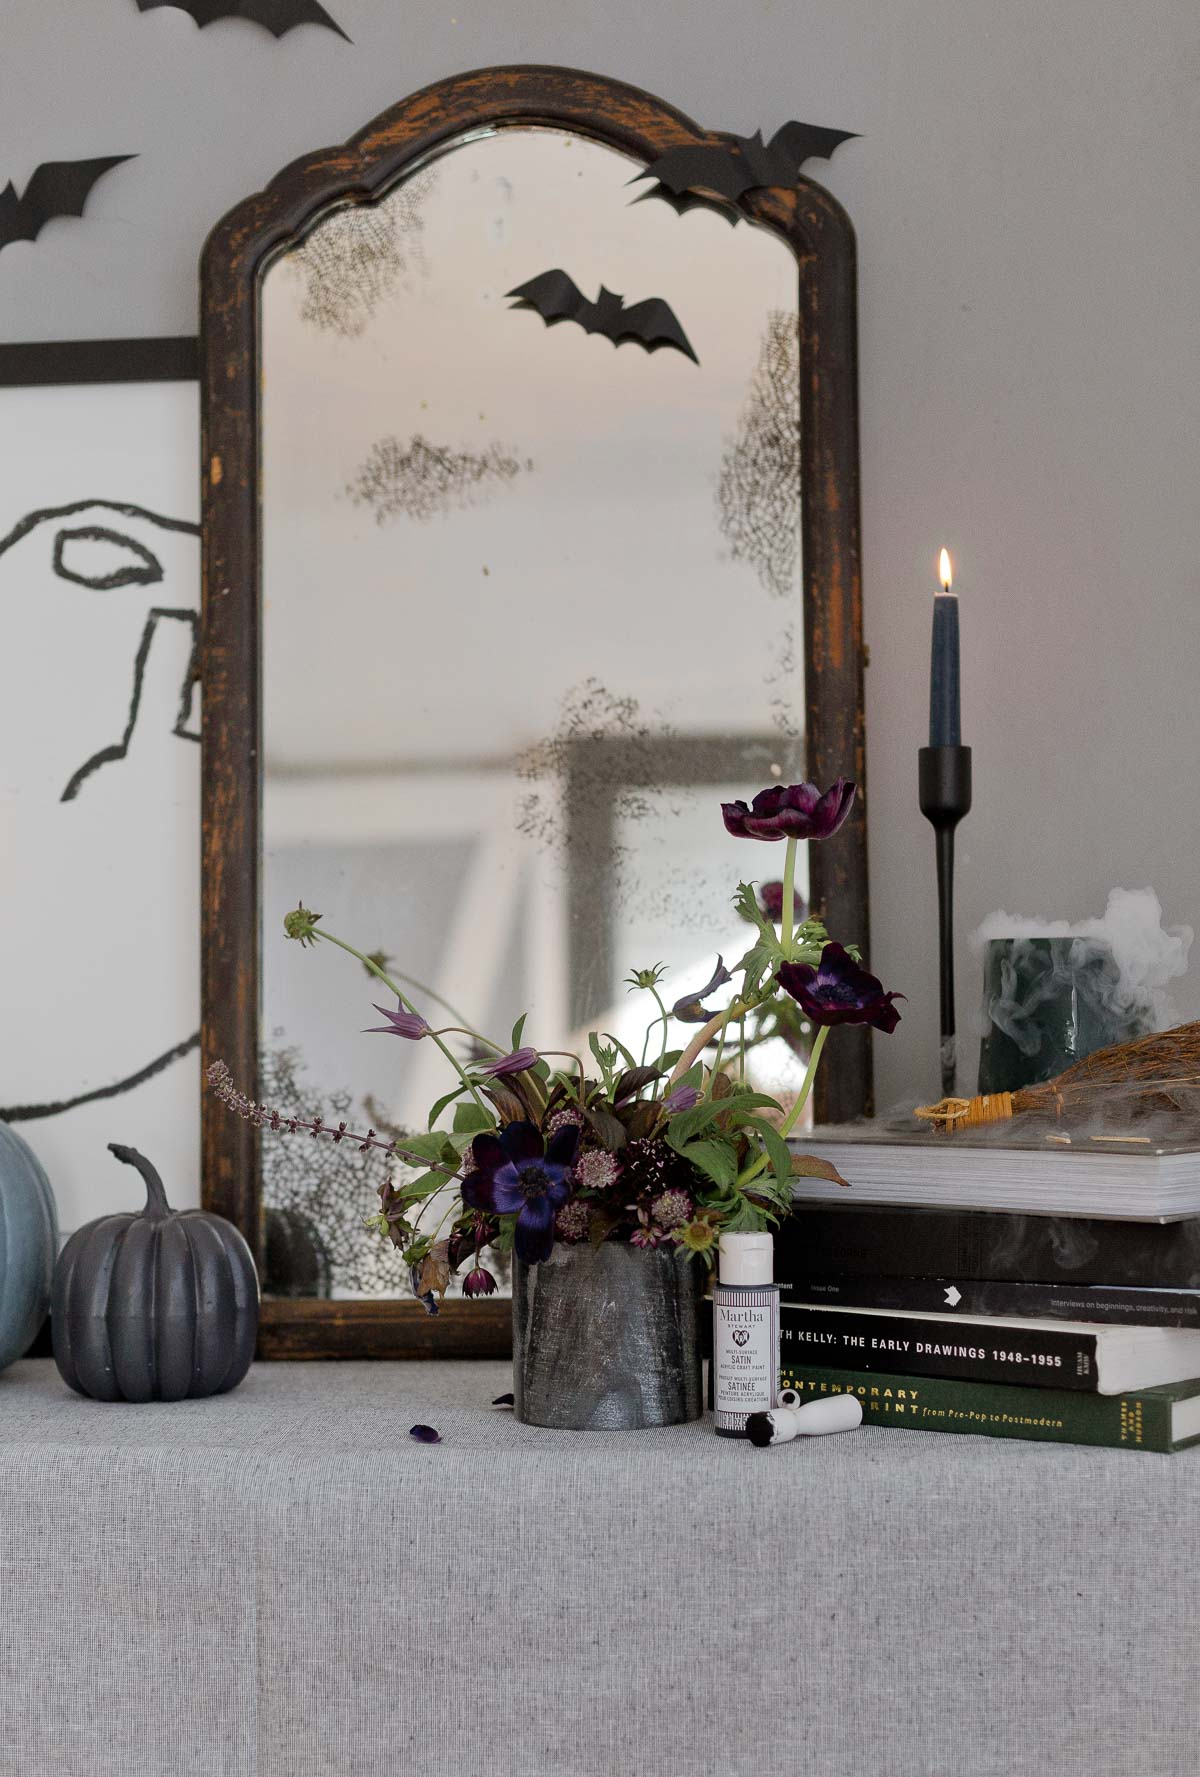 A modern take on Halloween decor with an antique DIY mirror, painted pumpkins, and more.